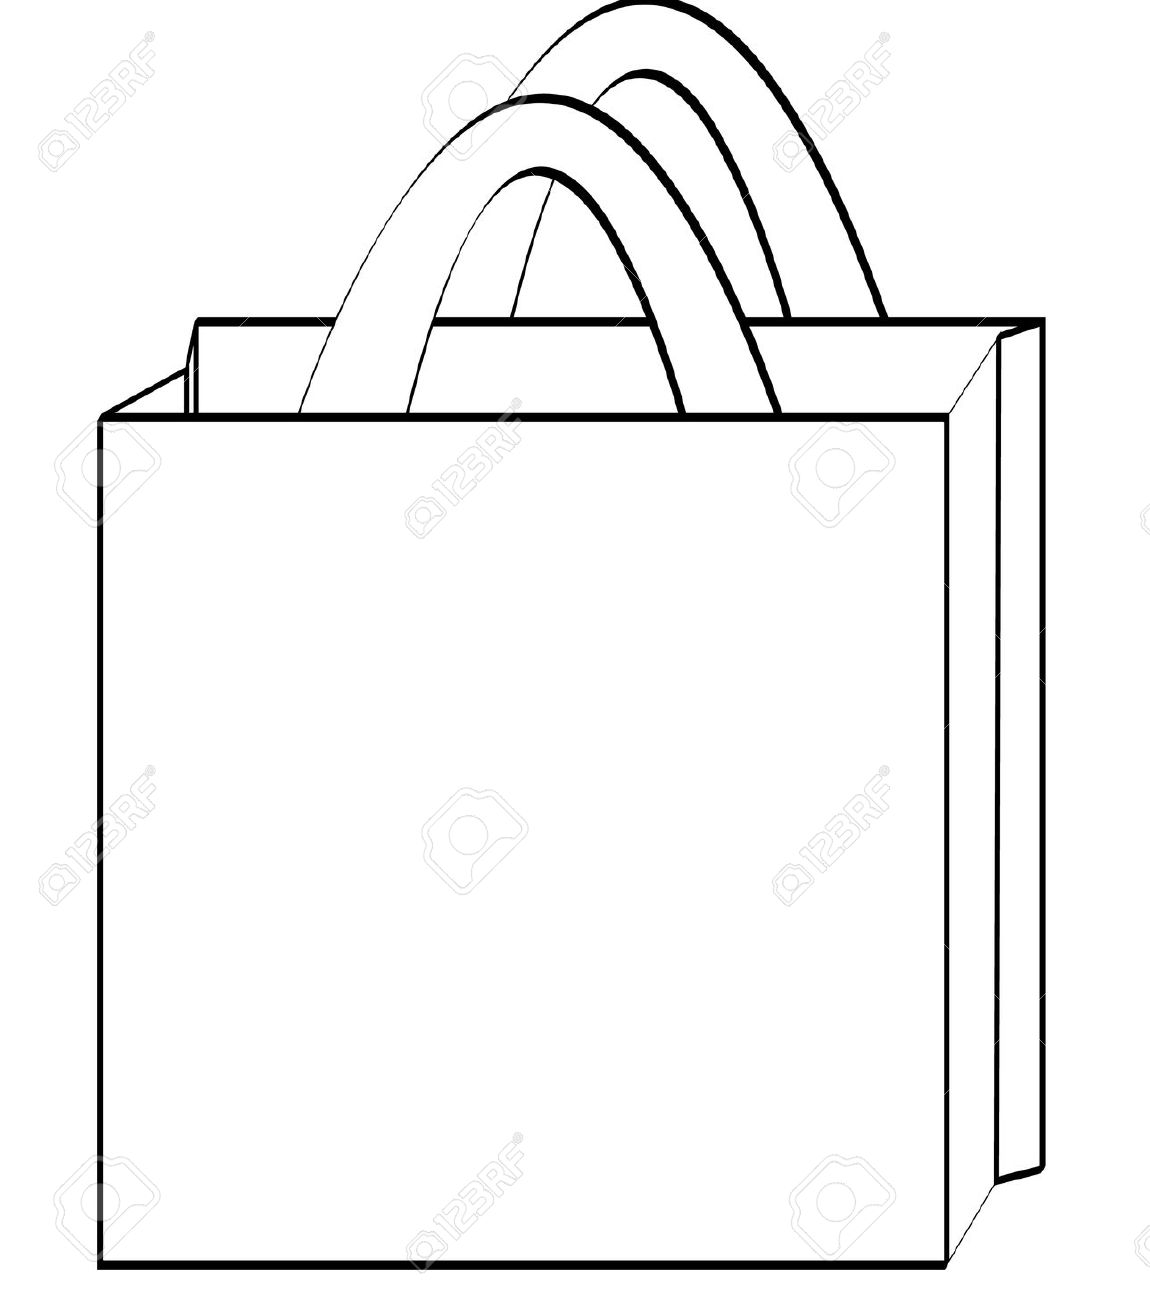 Tote bag clipart.